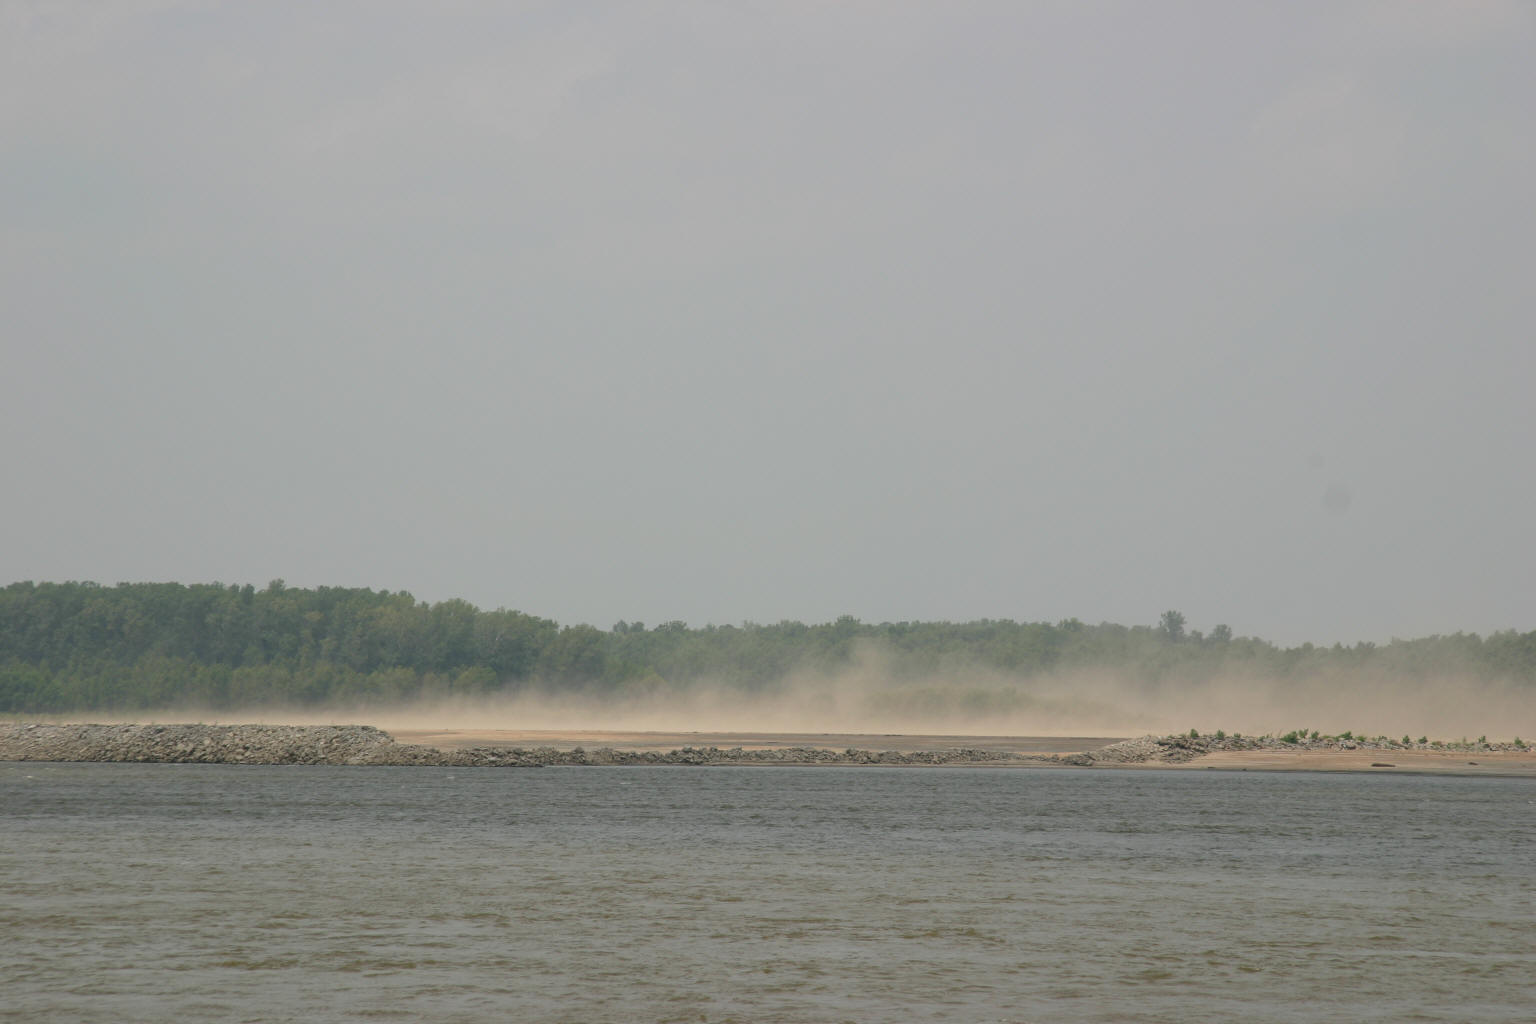 The south wind blows the tops off the sandbars